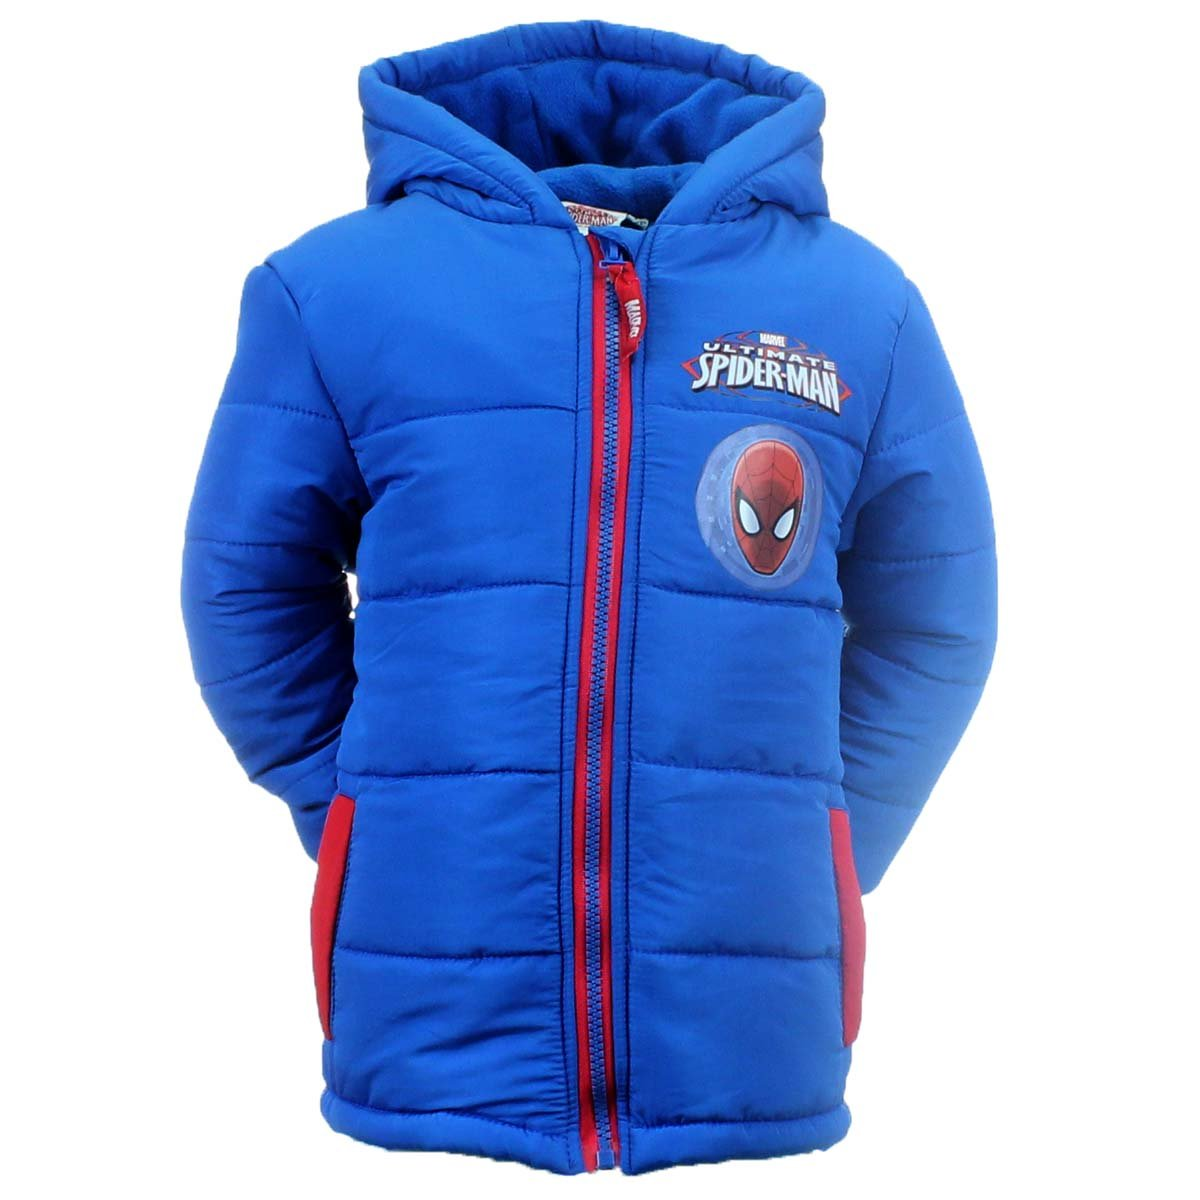 Spiderman Boys Winter Jacket Jacket Blue Light Blue